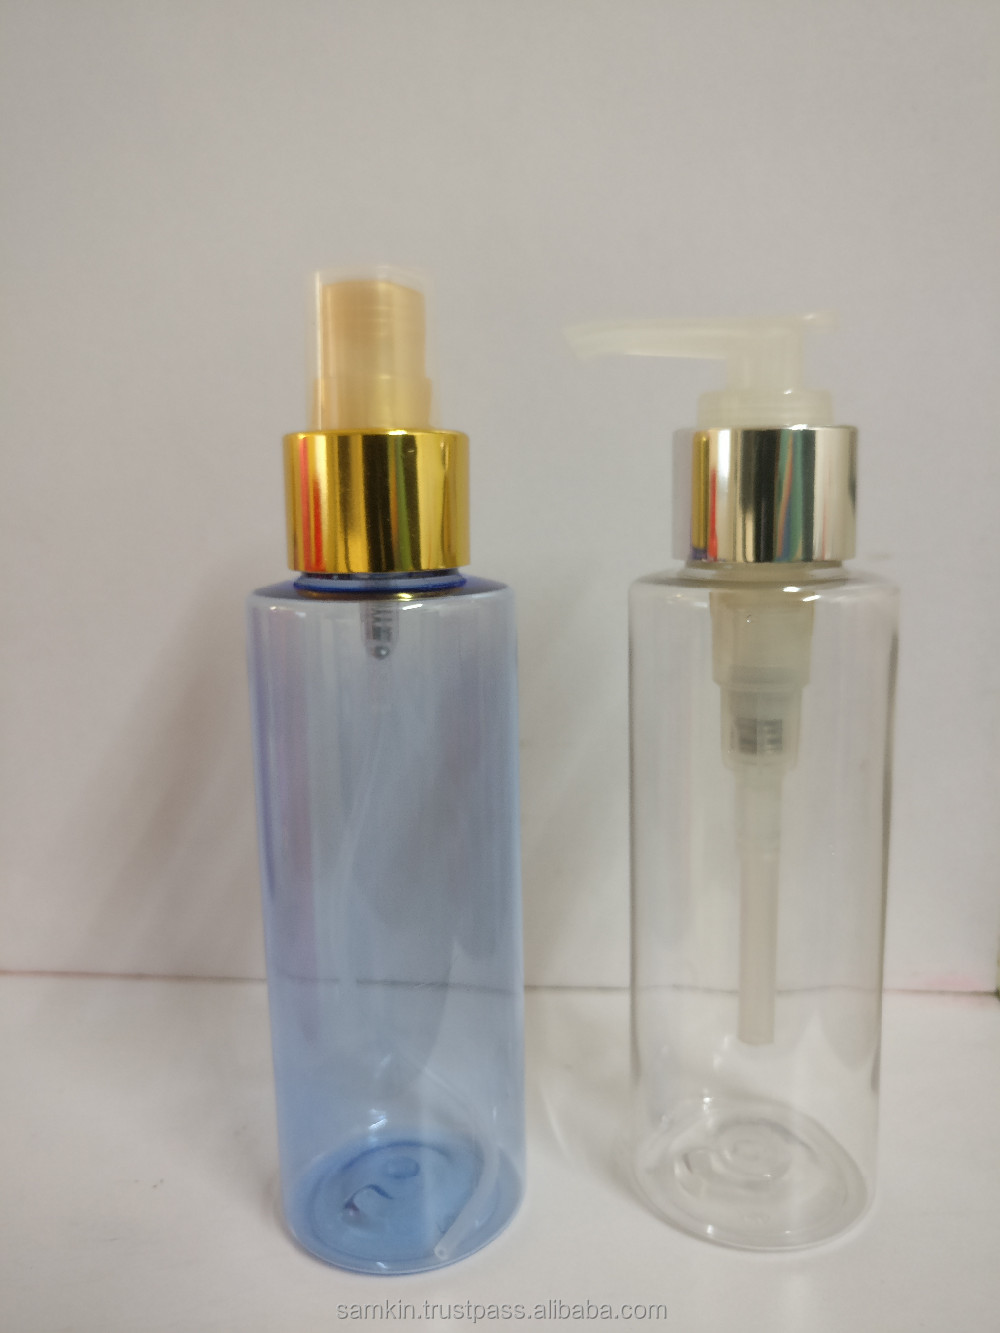 4 OZ SS FLAT ROUND SPRAY BOTTLES